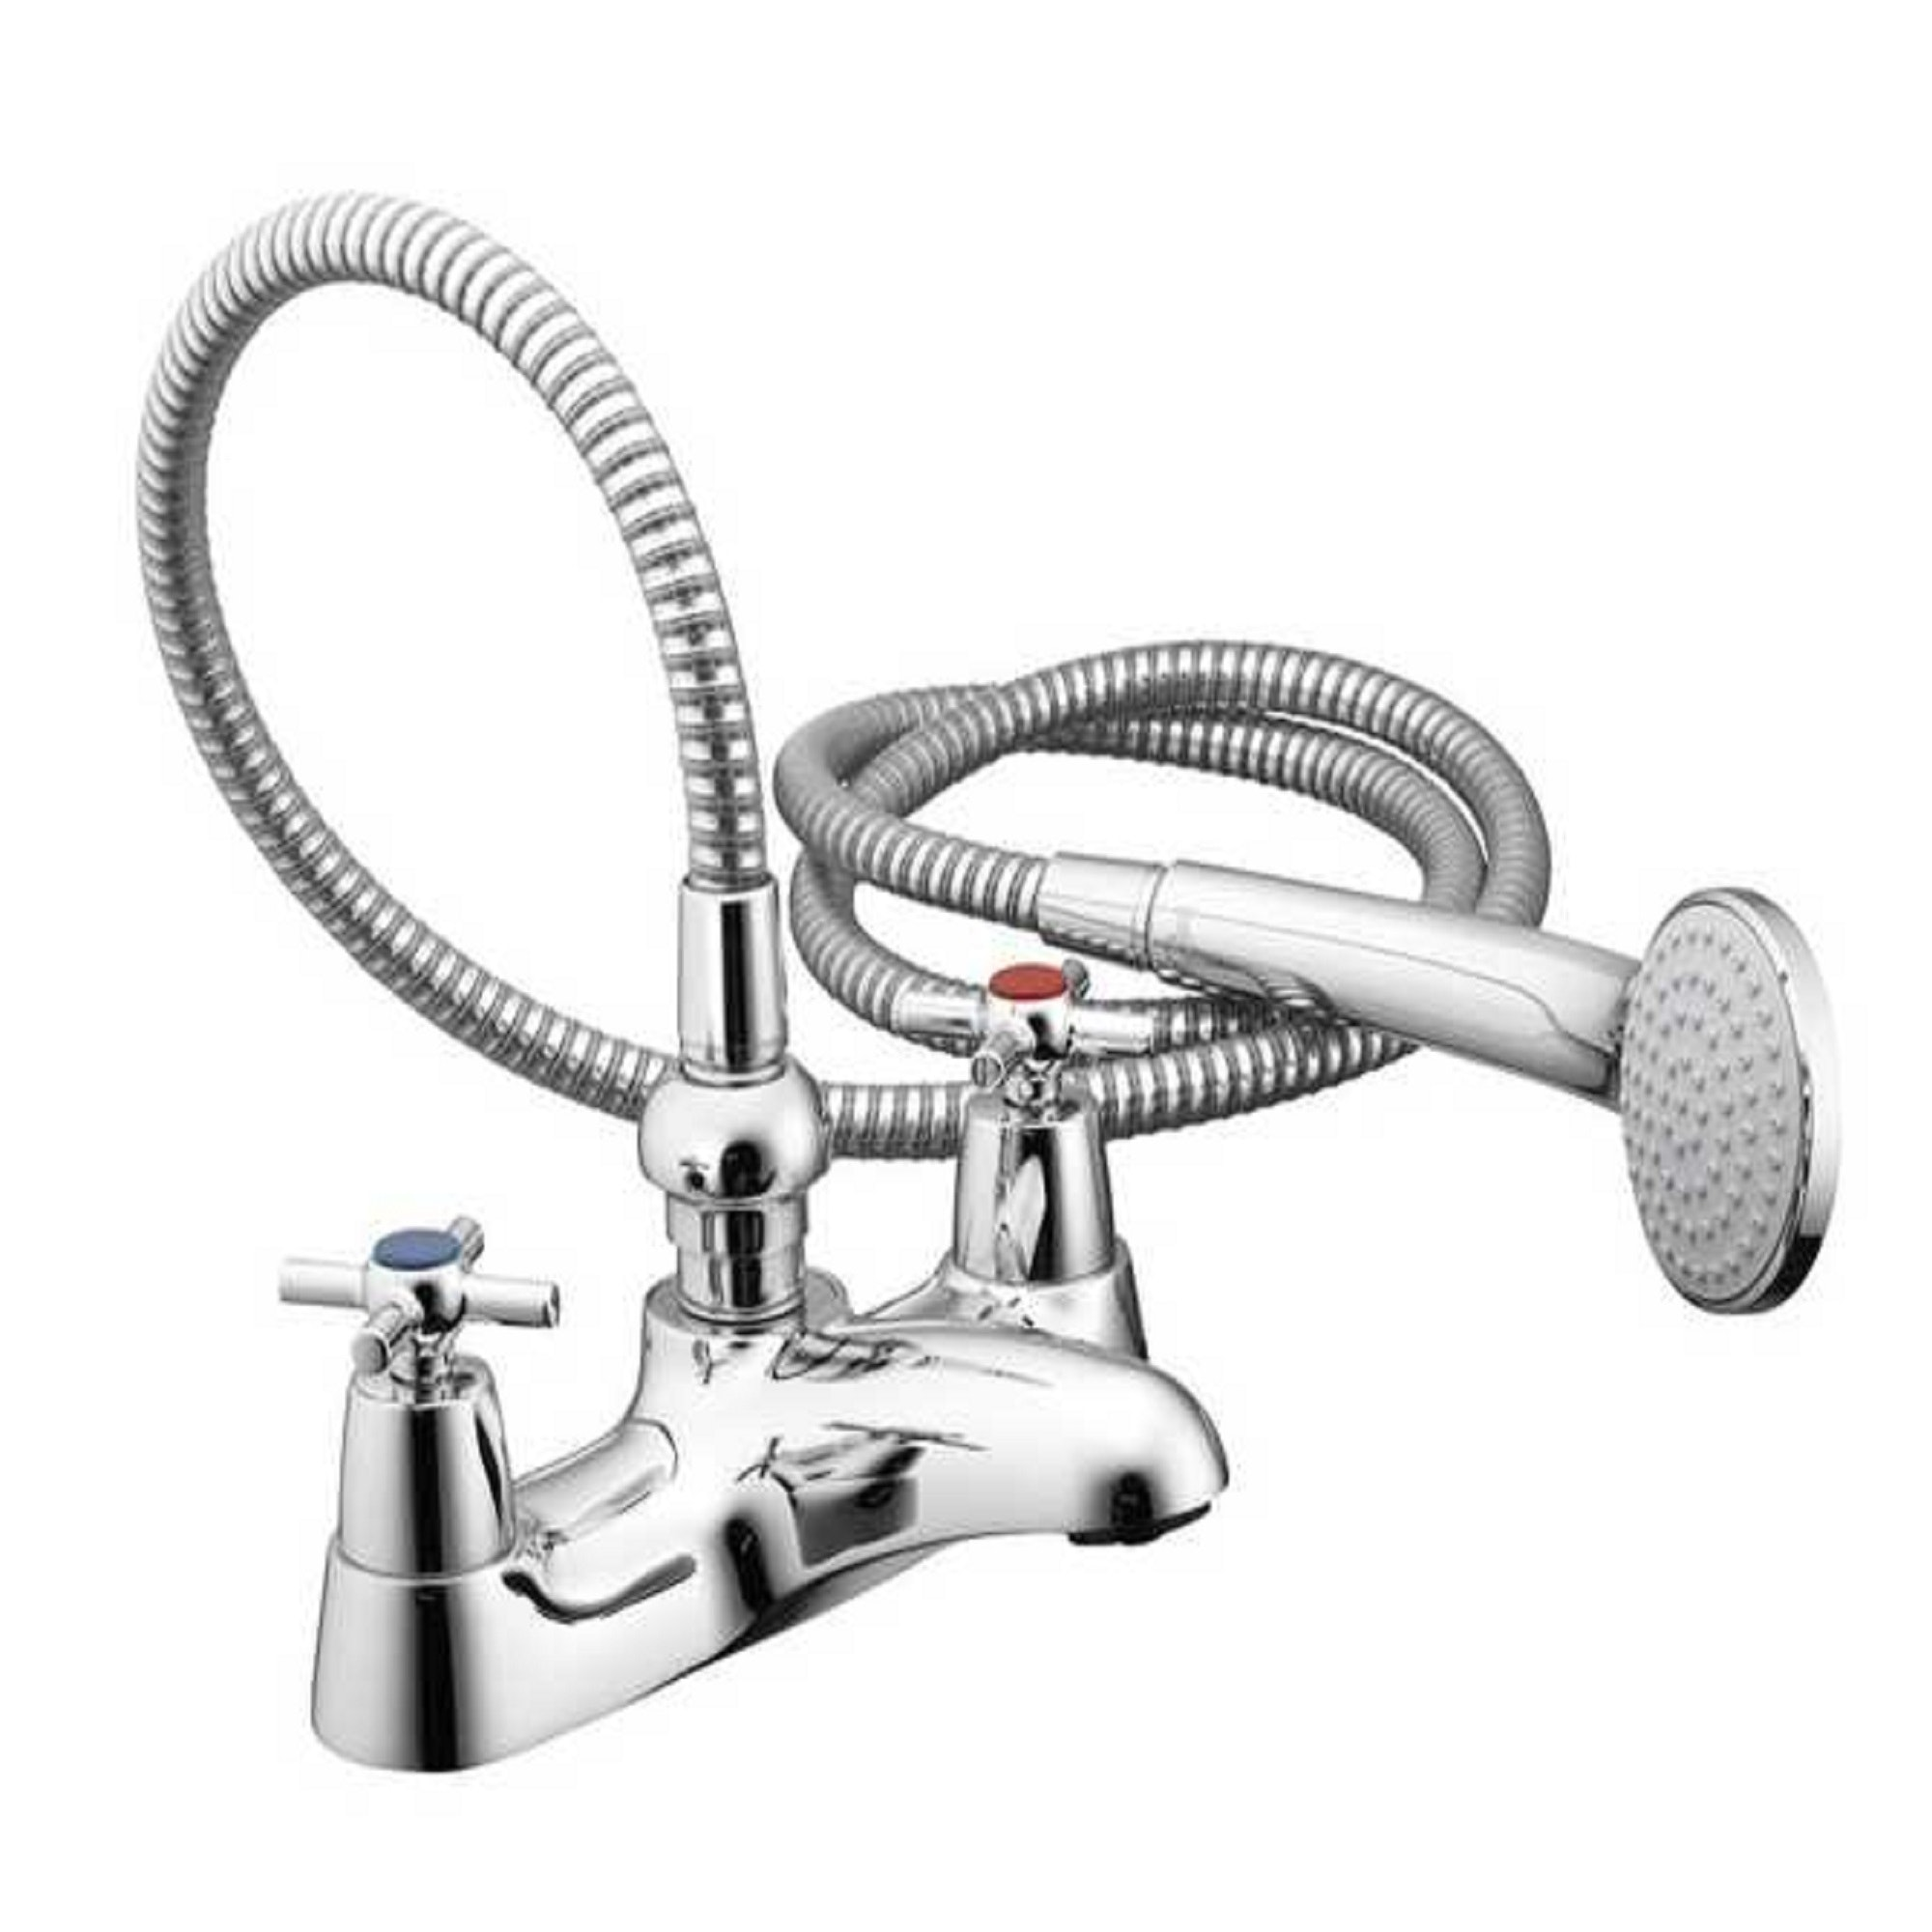 Shower Mixer Tap Market in 360MarketUpdates.com